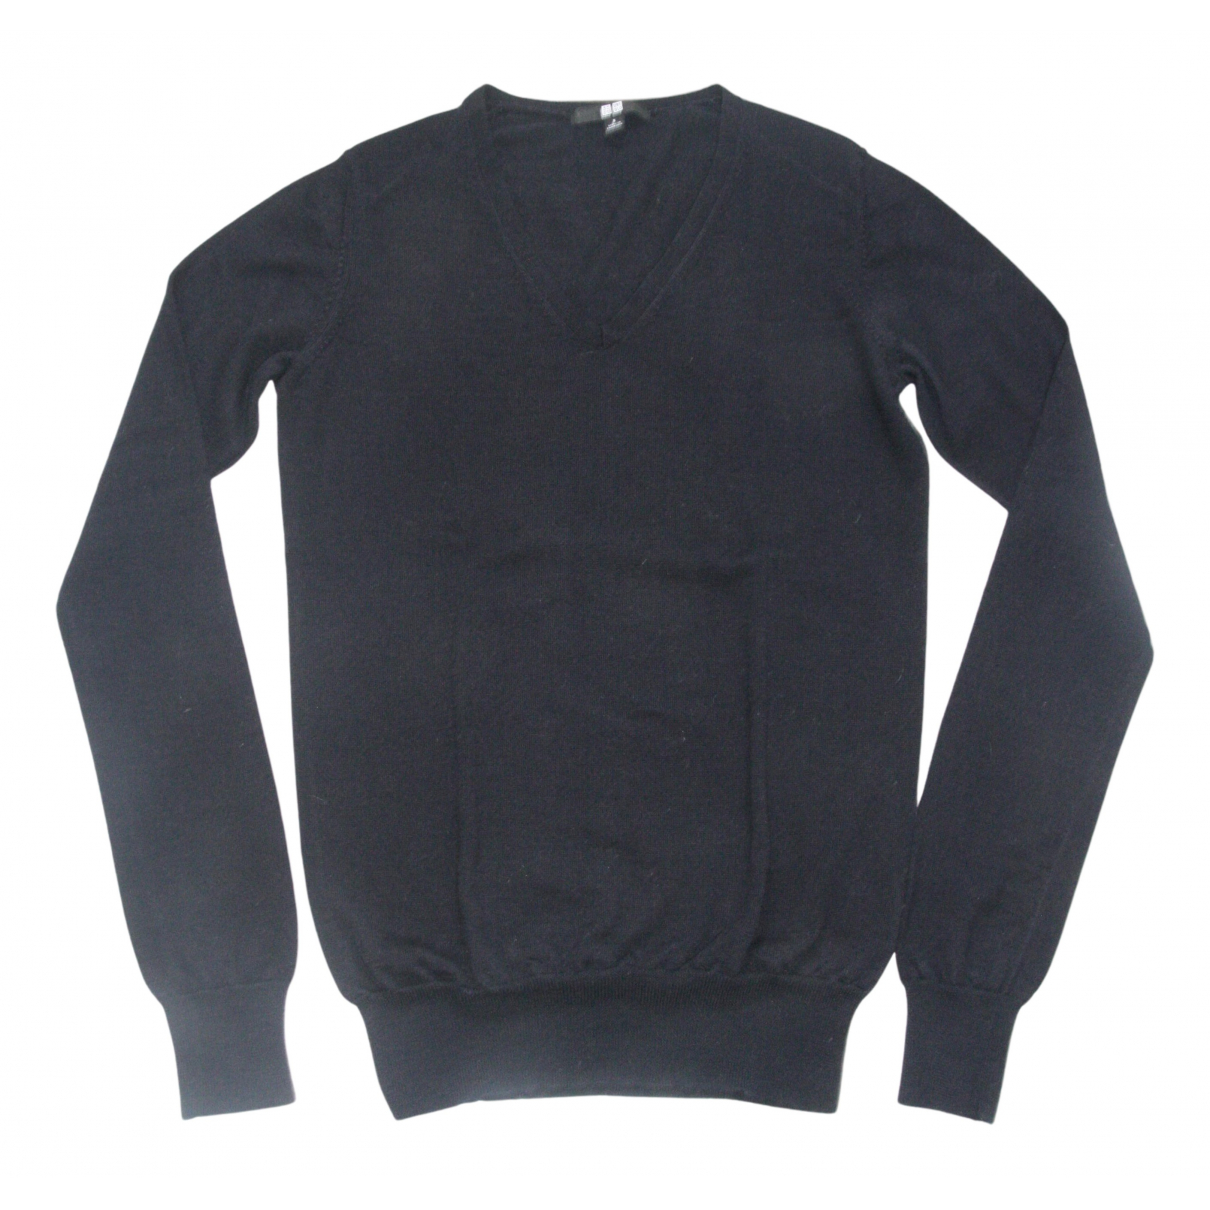 Uniqlo N Navy Wool Knitwear for Women S International